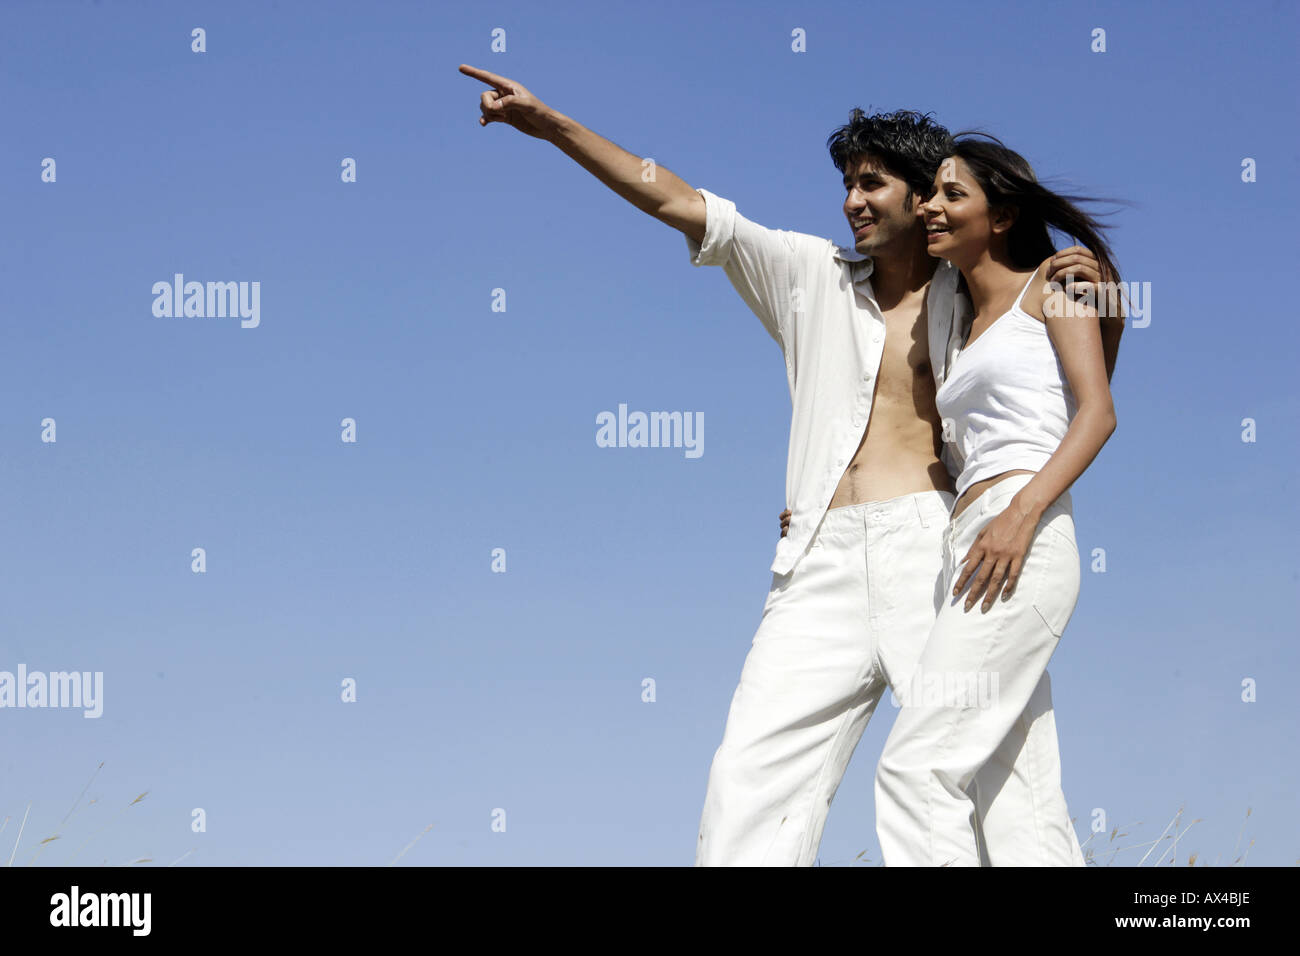 Young man standing with his girlfriend and pointing - Stock Image